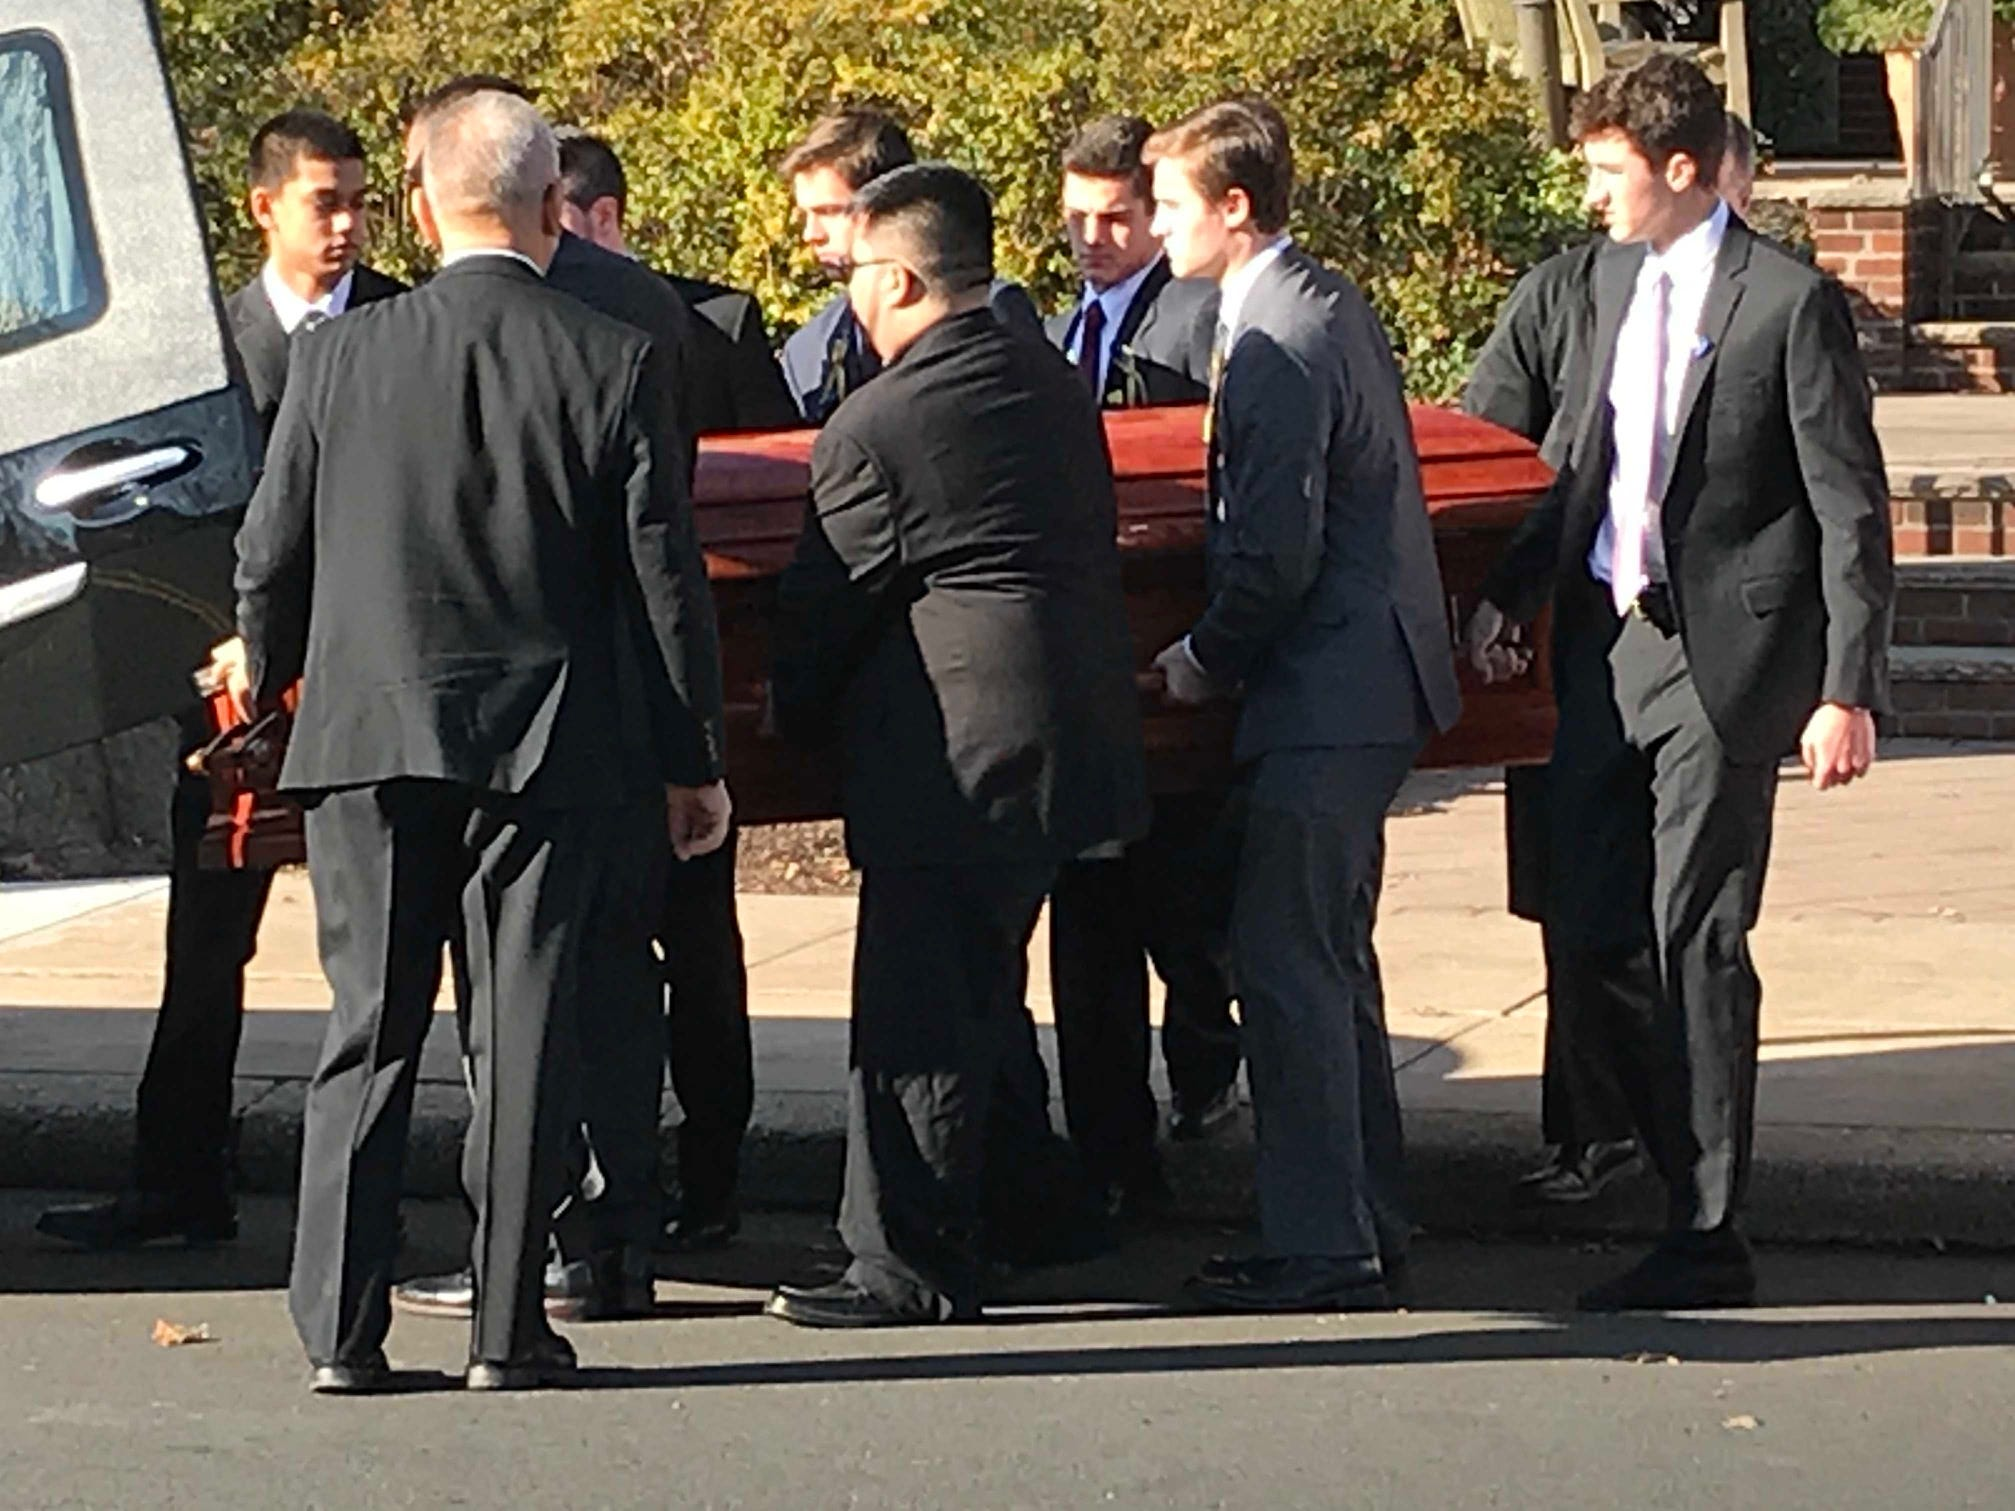 The coffin carrying Michael Sot is placed into the waiting hearse following his funeral.